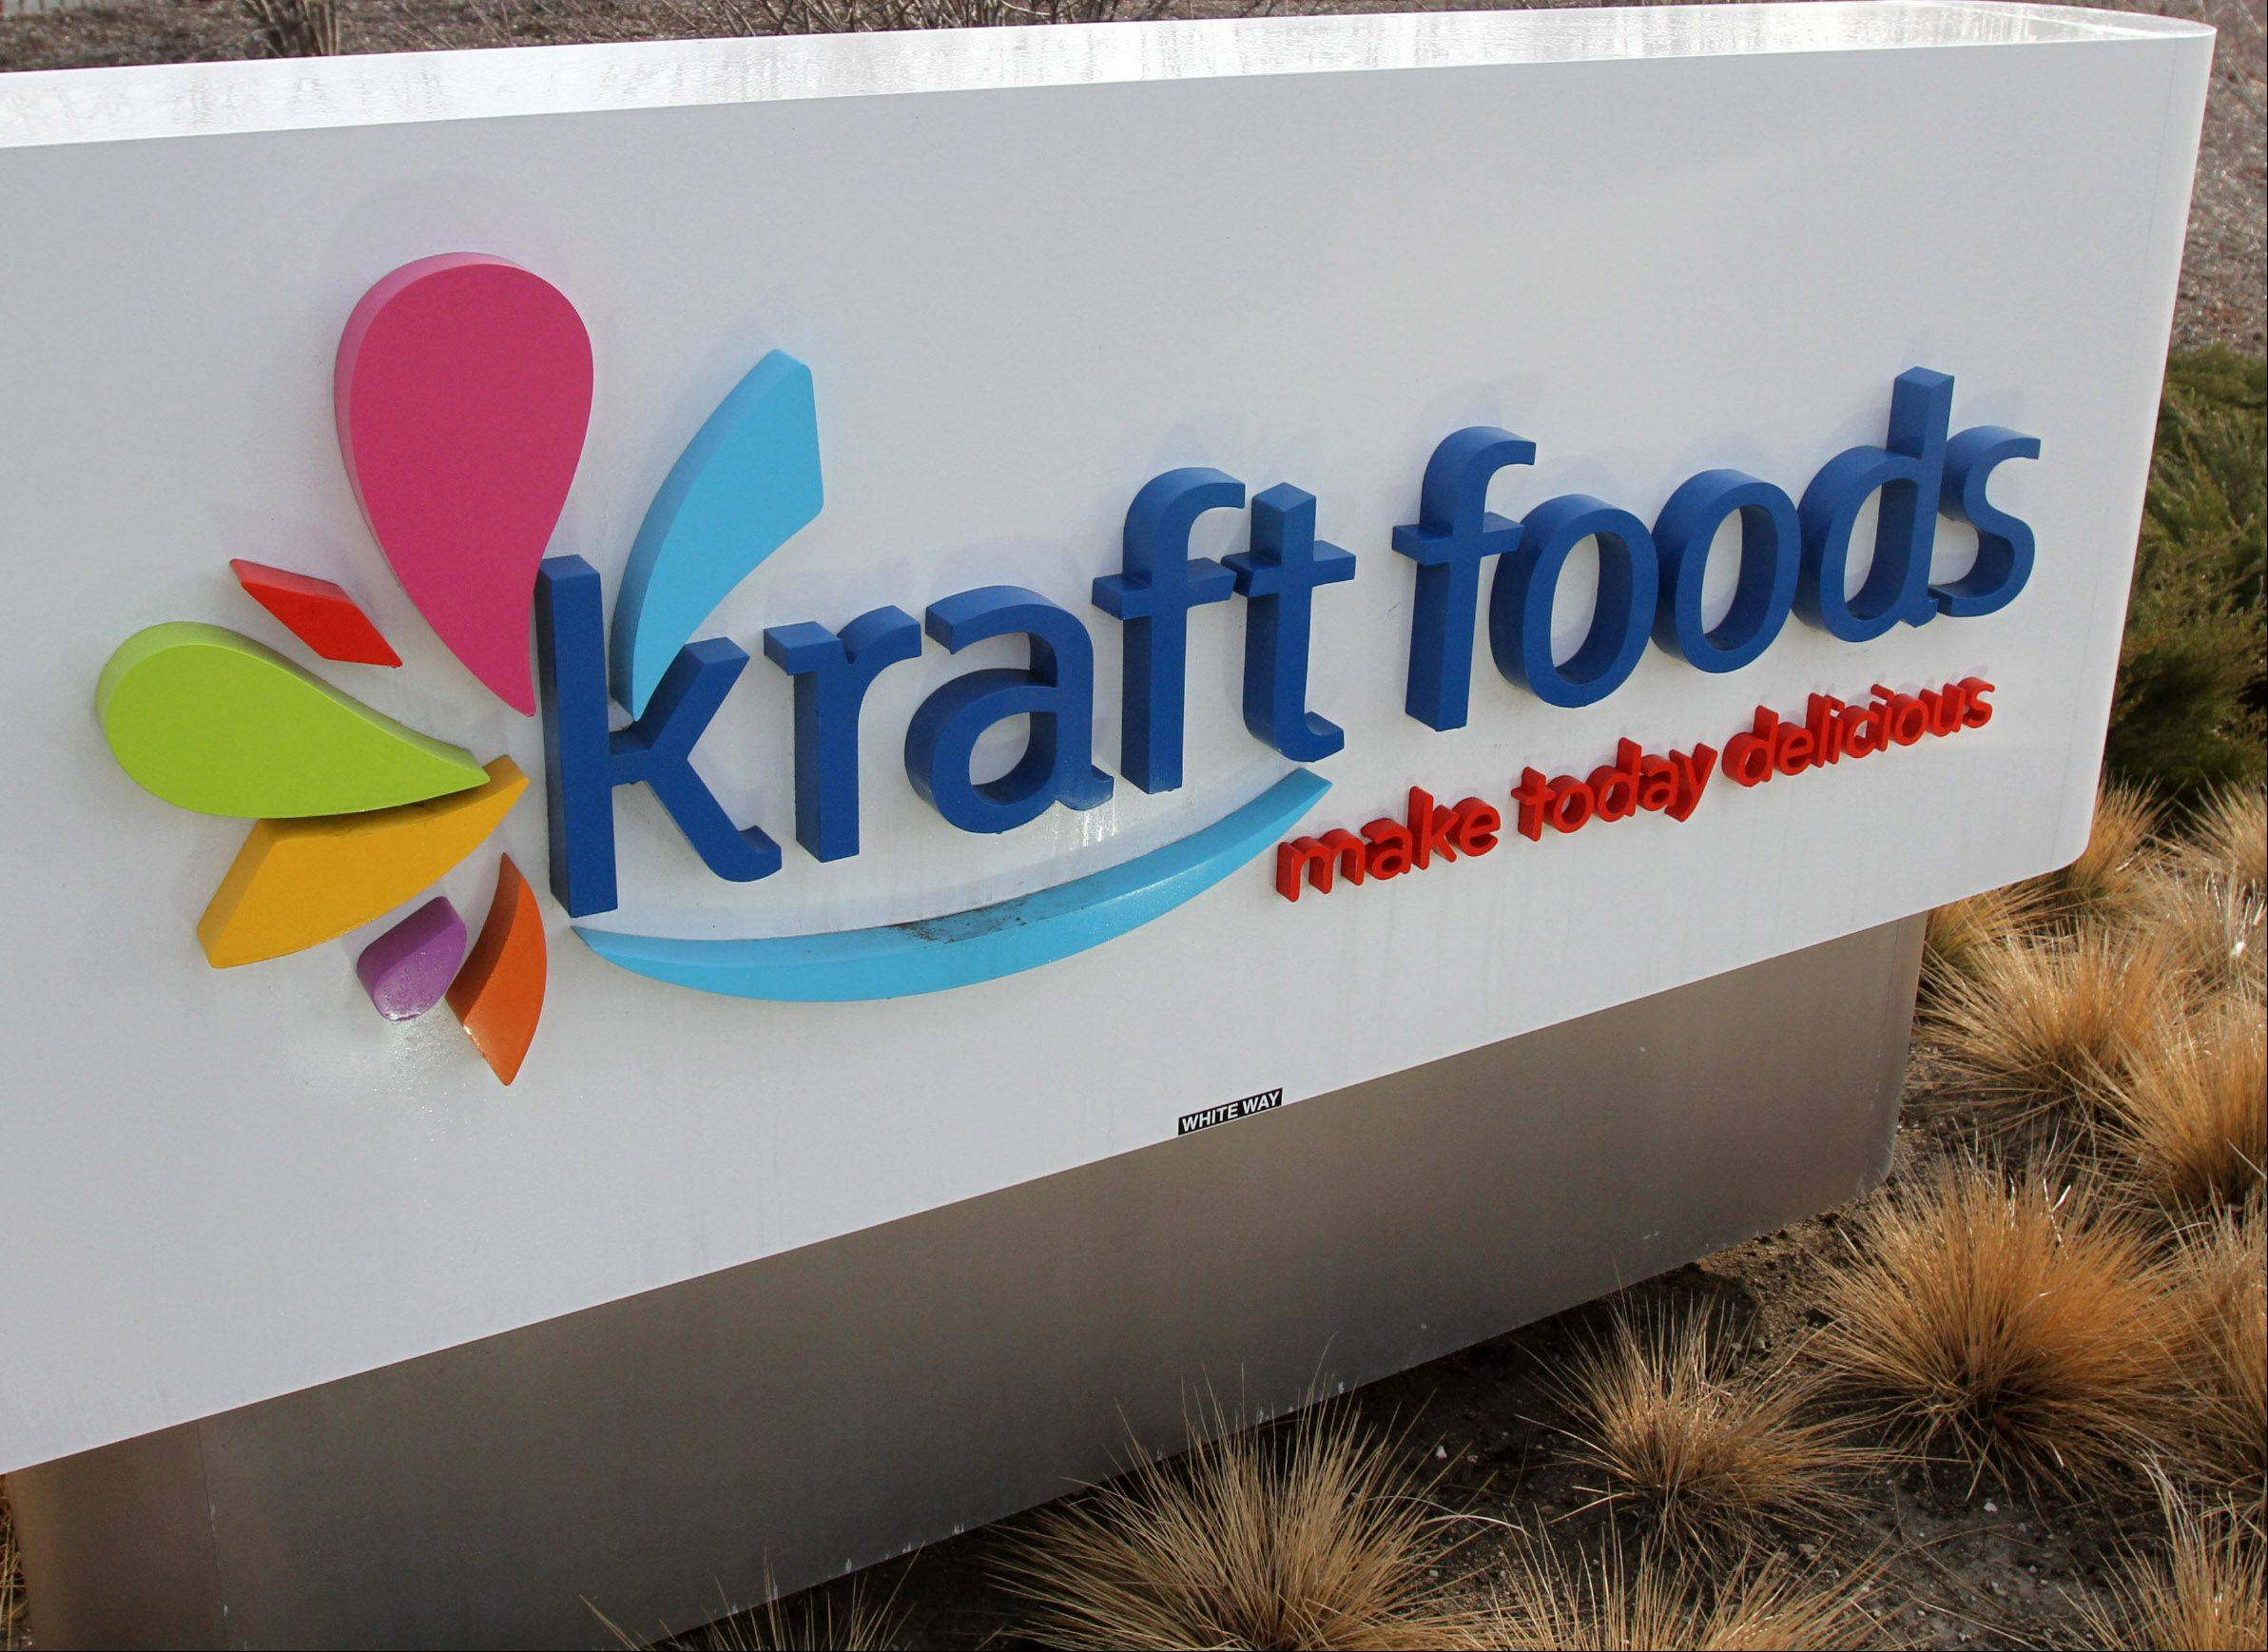 The Nasdaq is cancelling some trades of Kraft Foods Group Inc. following an unusual spike after the market opened.